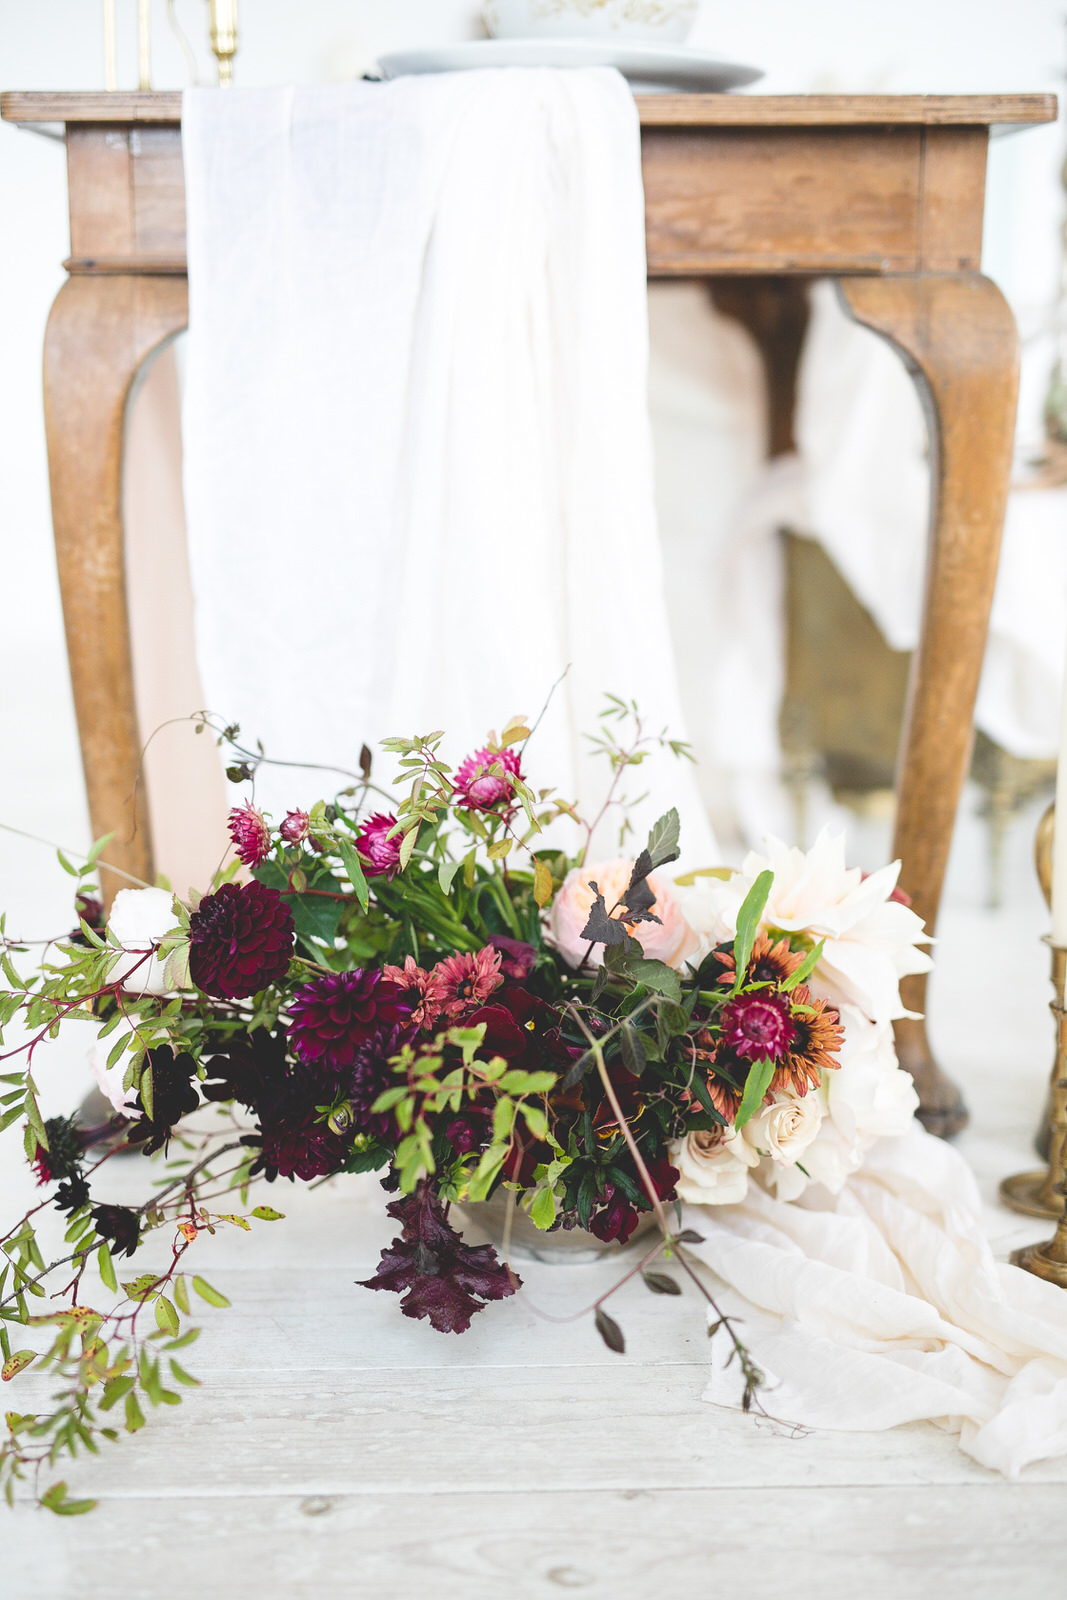 Styled wedding flowers shot by Wild things wed